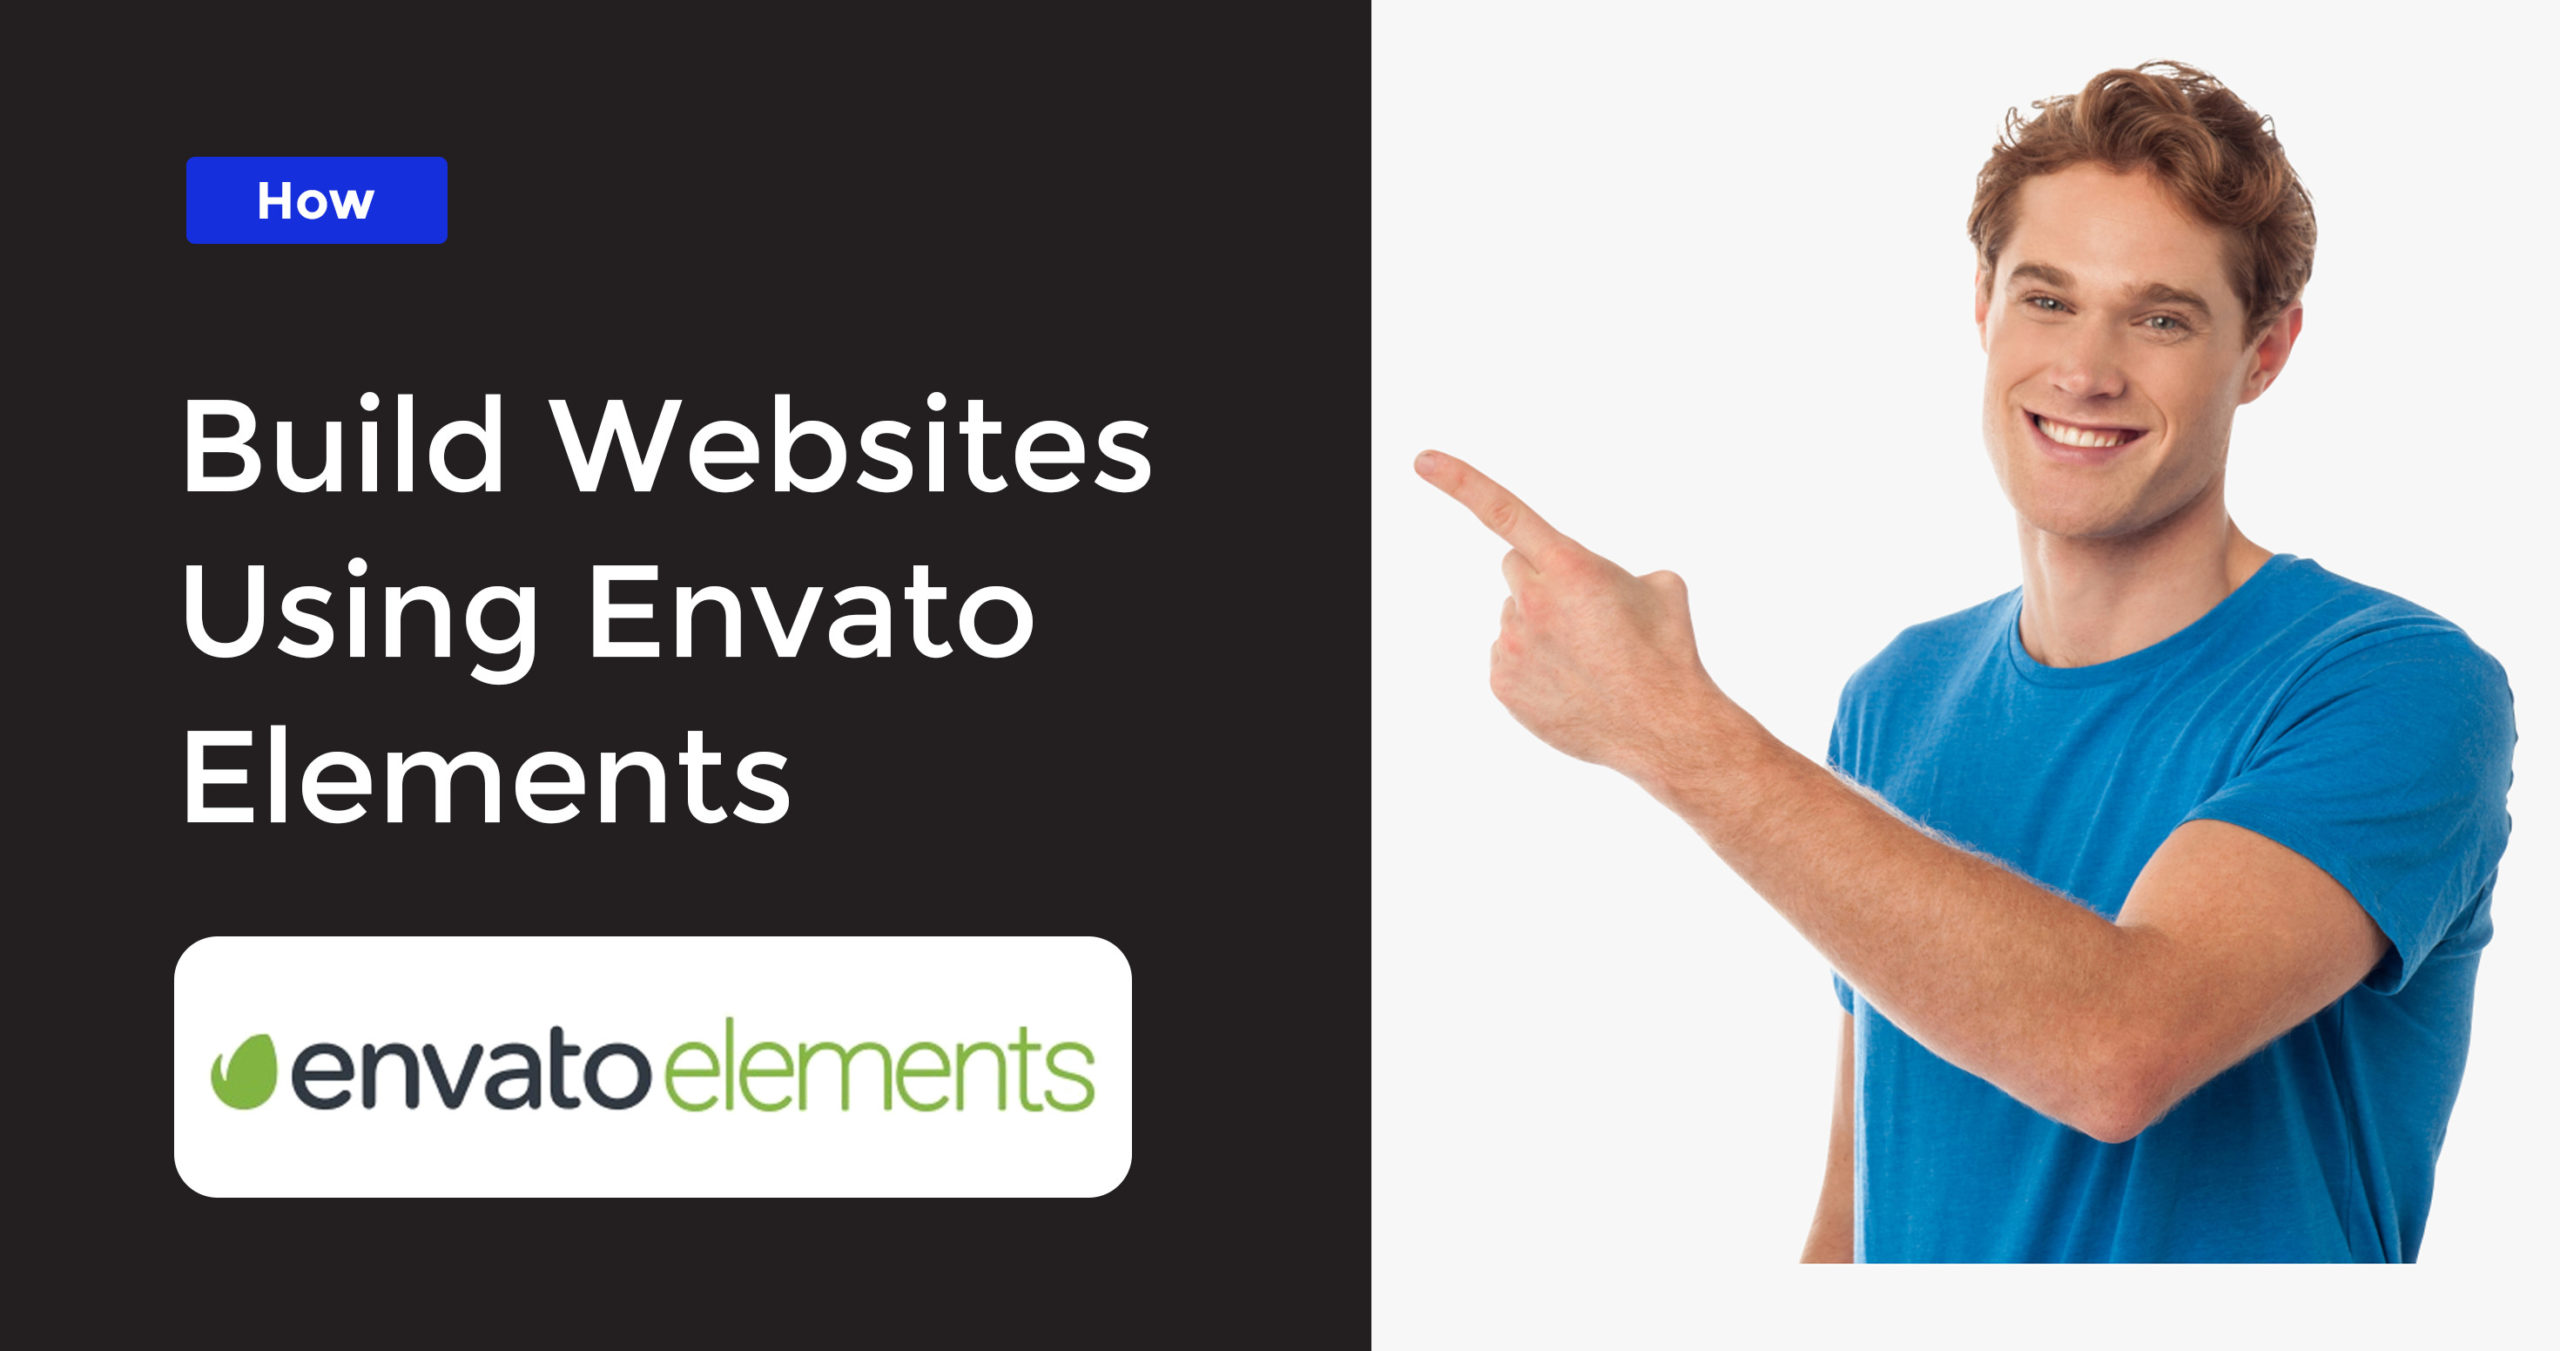 How to Build Websites Using Envato Elements